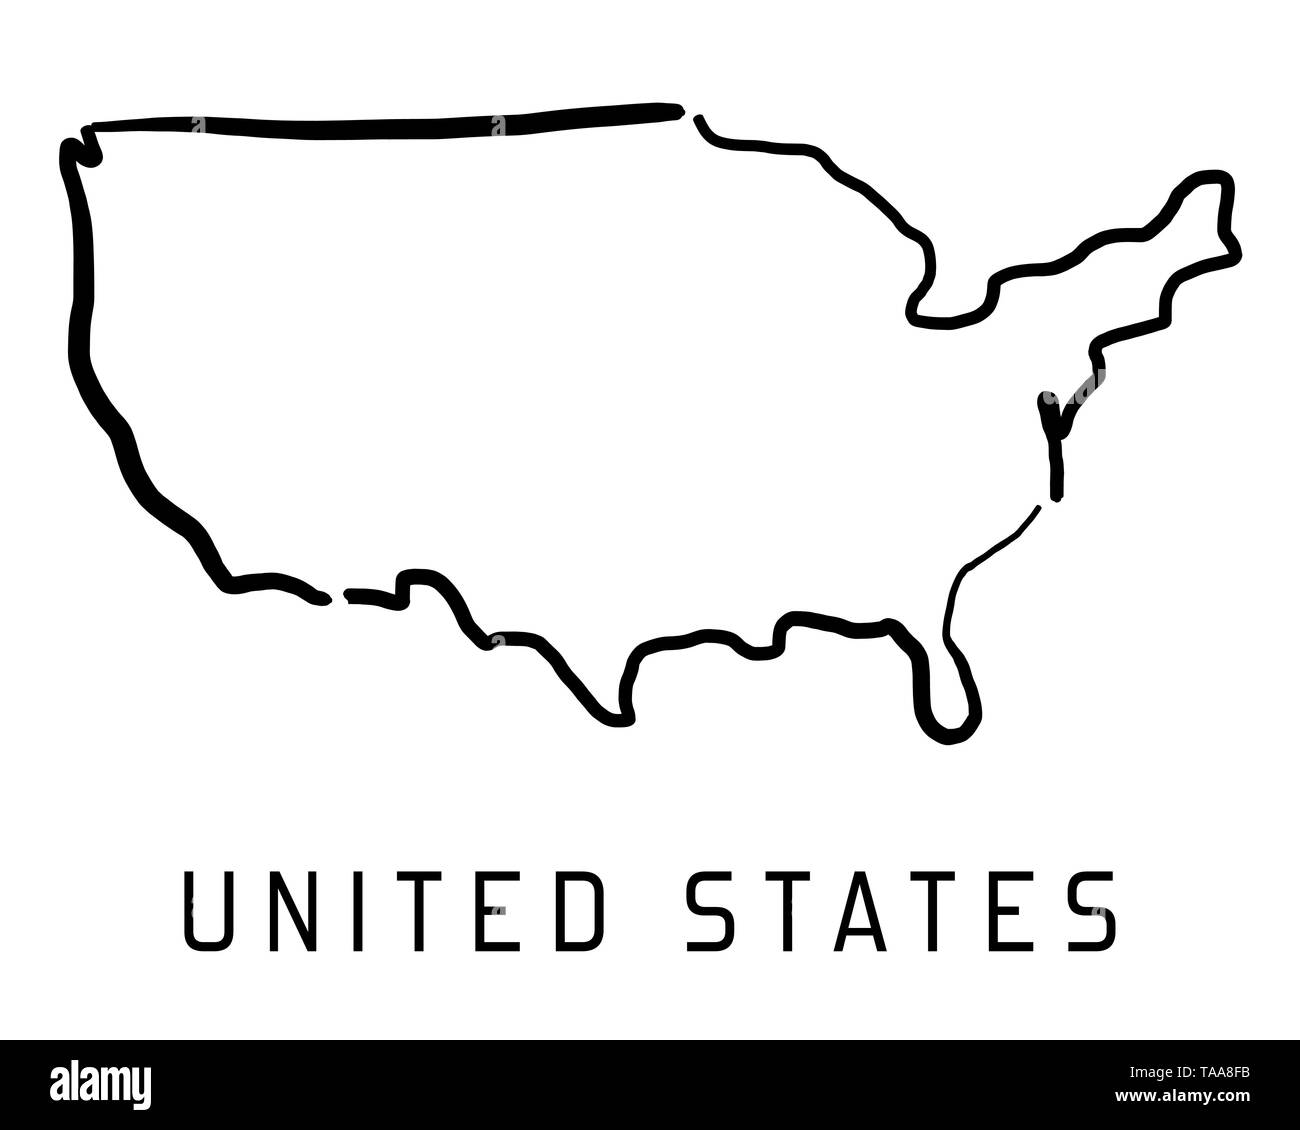 United States map outline - smooth simplified country shape ...